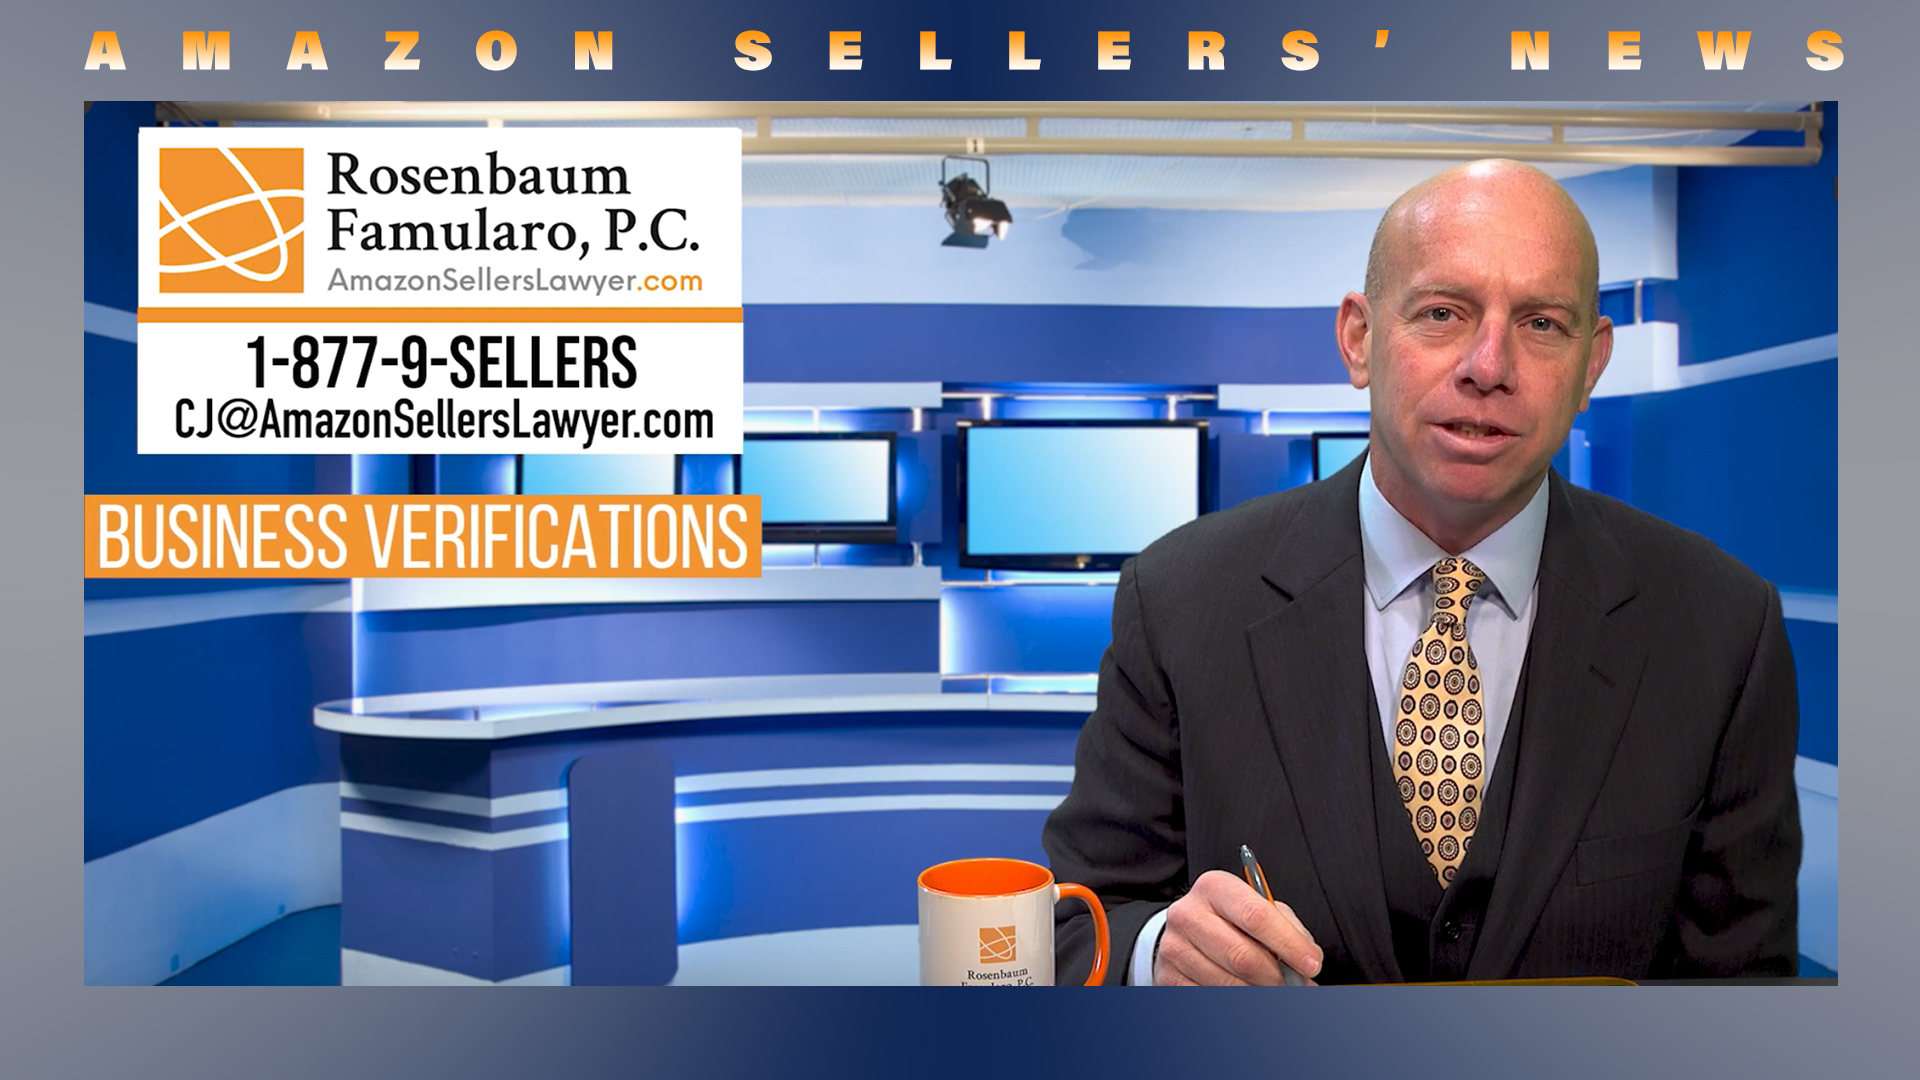 Amazon Business Verification, Increased Requests by Amazon for Certifications & IP Complaints